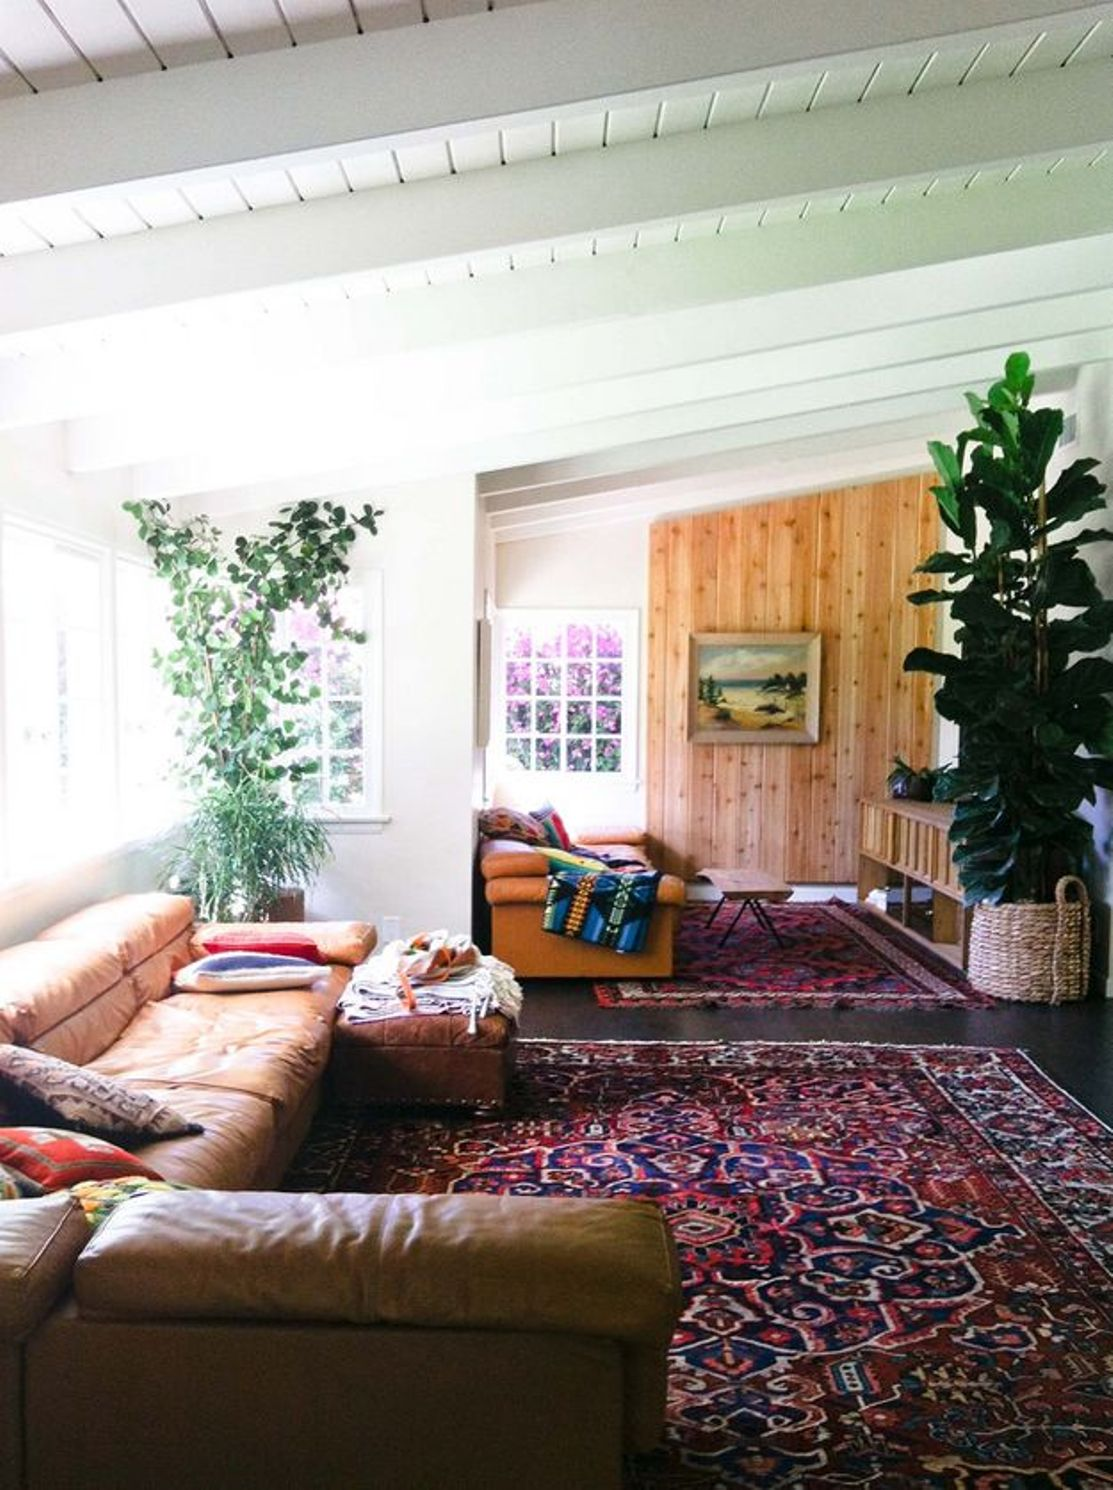 Our Favorite Bohemian Rooms for Inspiration